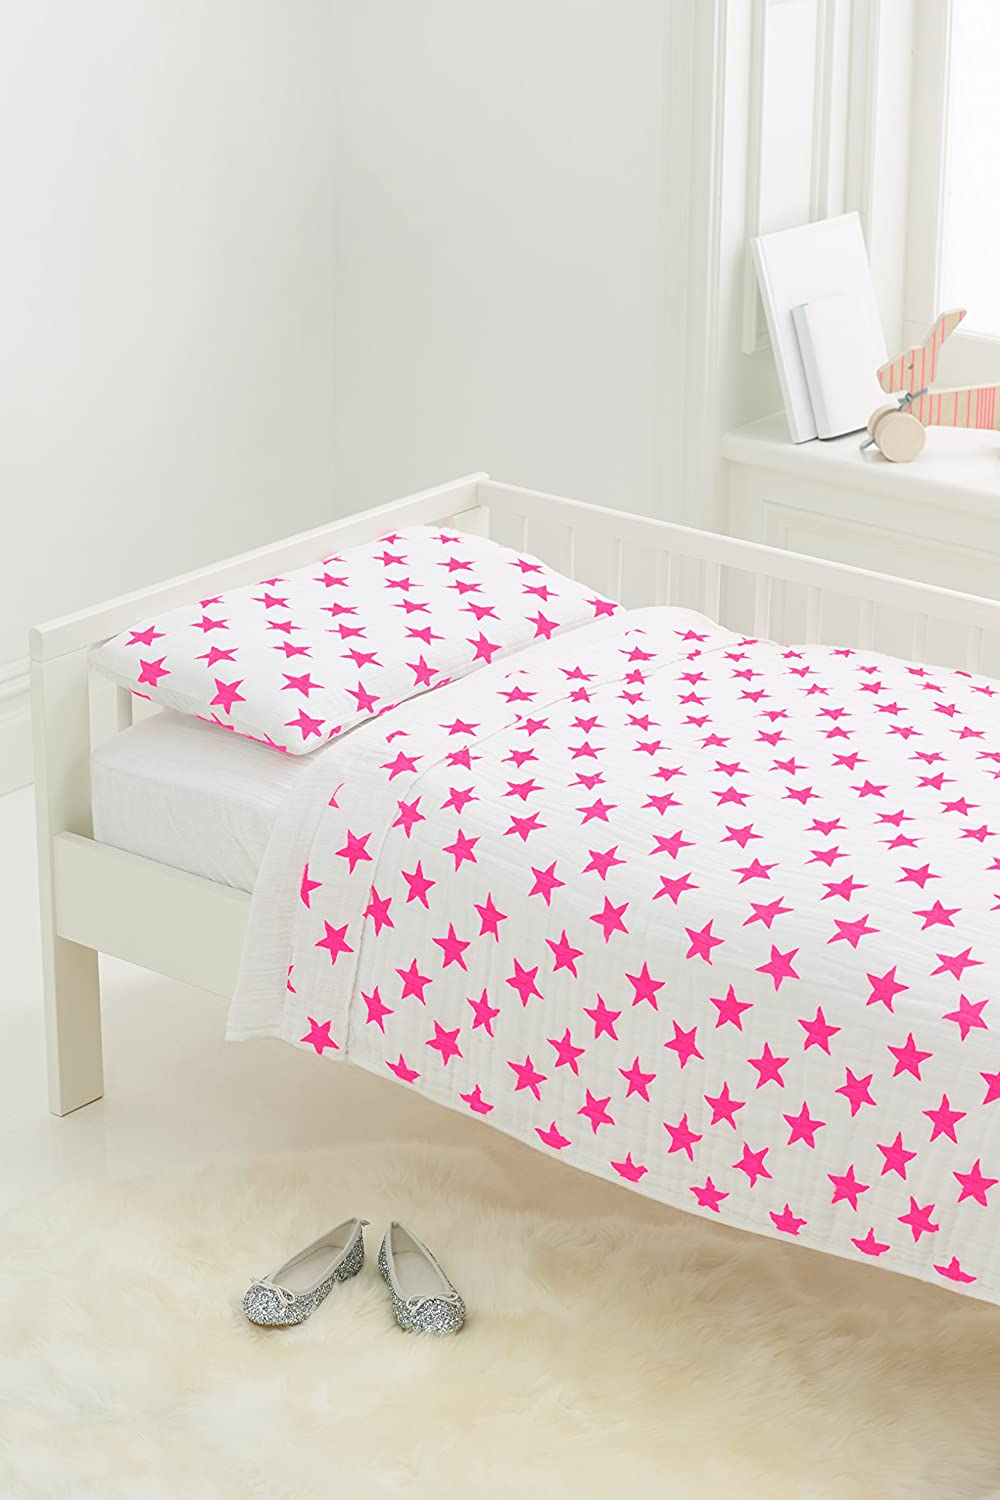 aden + anais Classic Toddler Bed in a Bag, Fluro Pink